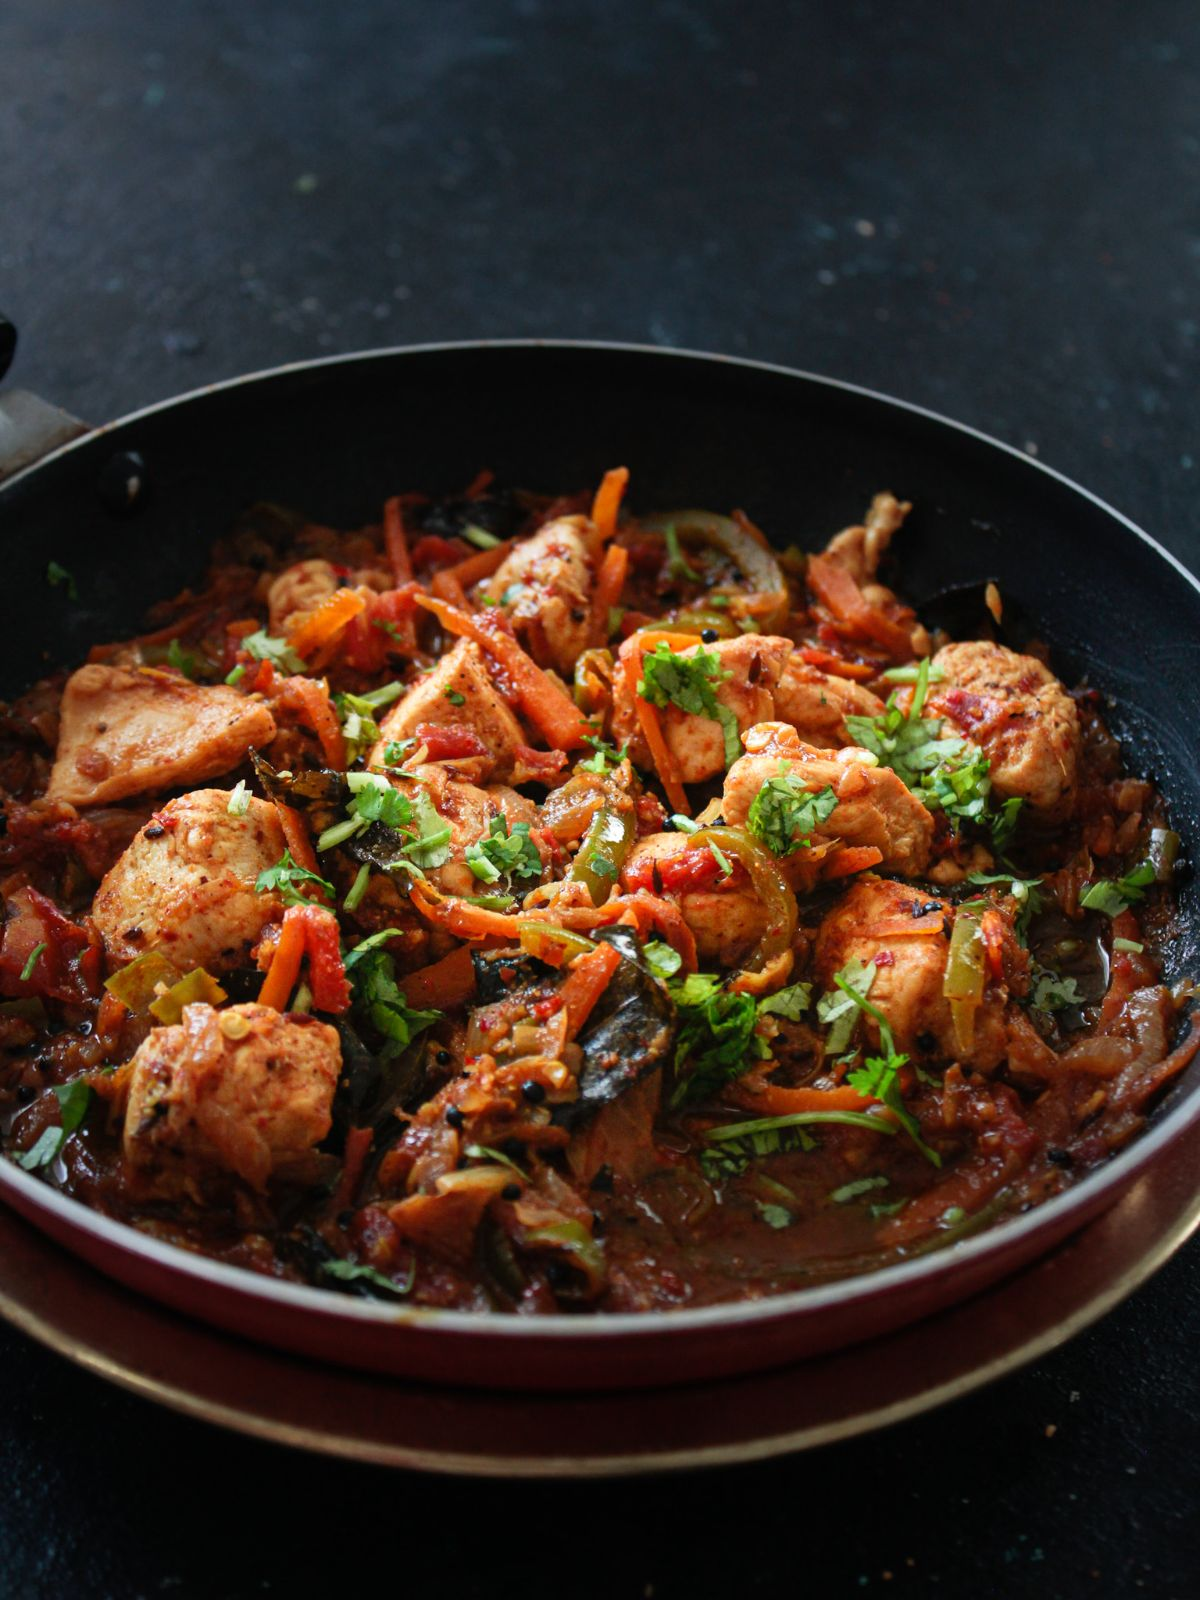 Red skillet of chicken stir fry sitting on black table